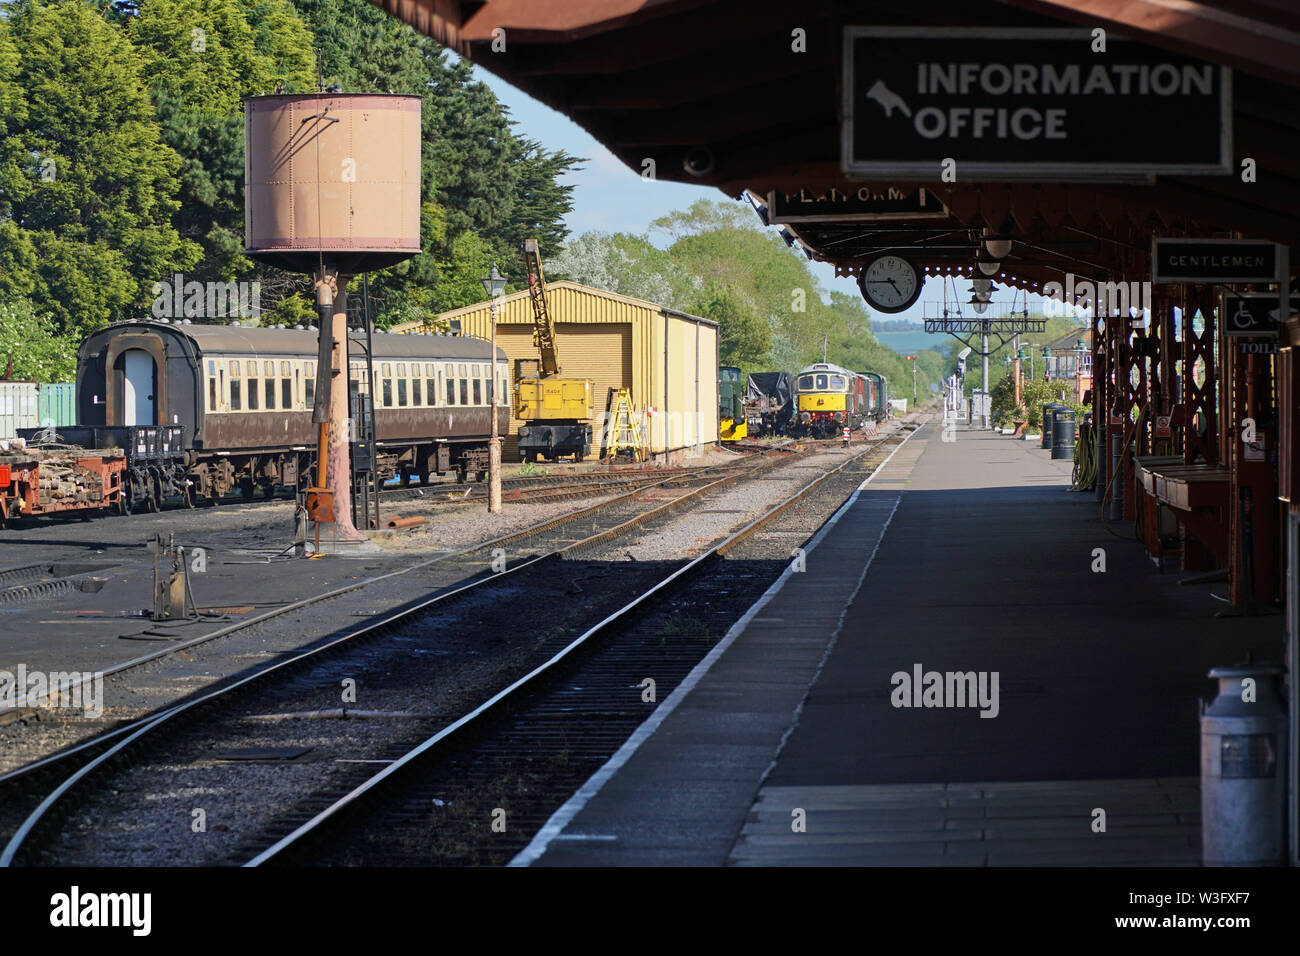 The platform at Minehaed station on a sunny day - Stock Image